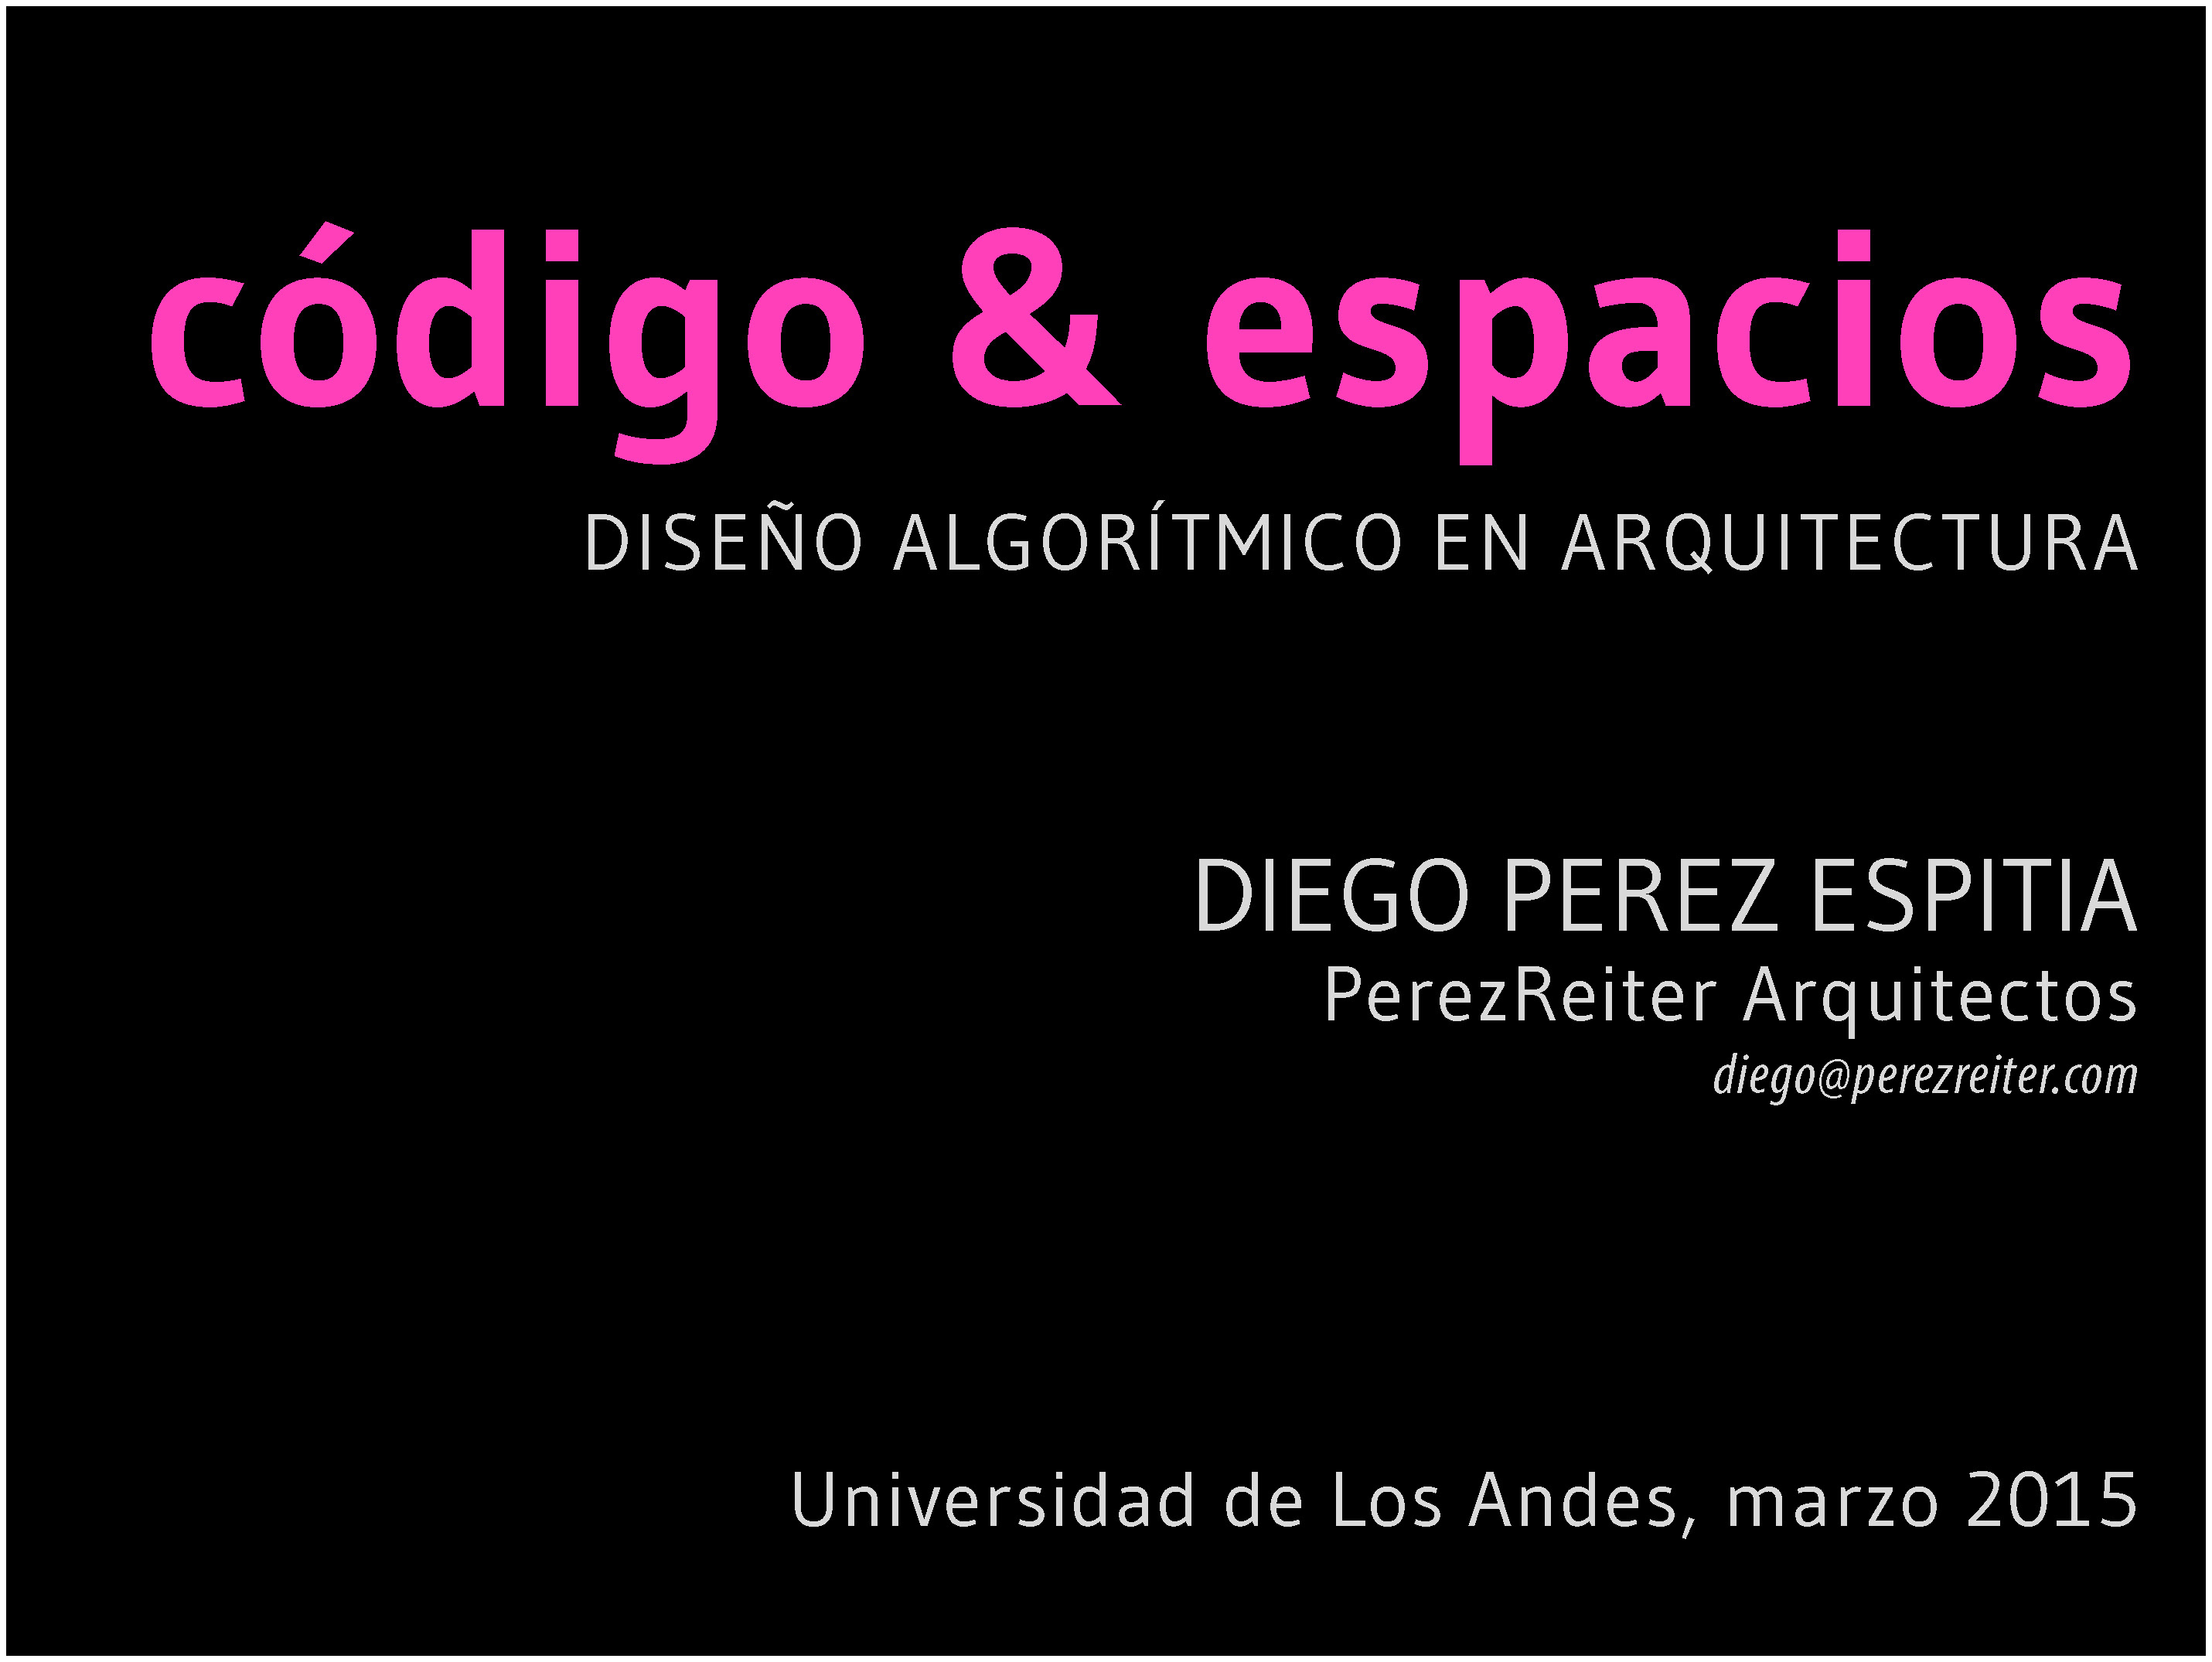 LECTURE @ UNIVERSITY OF LOS ANDES